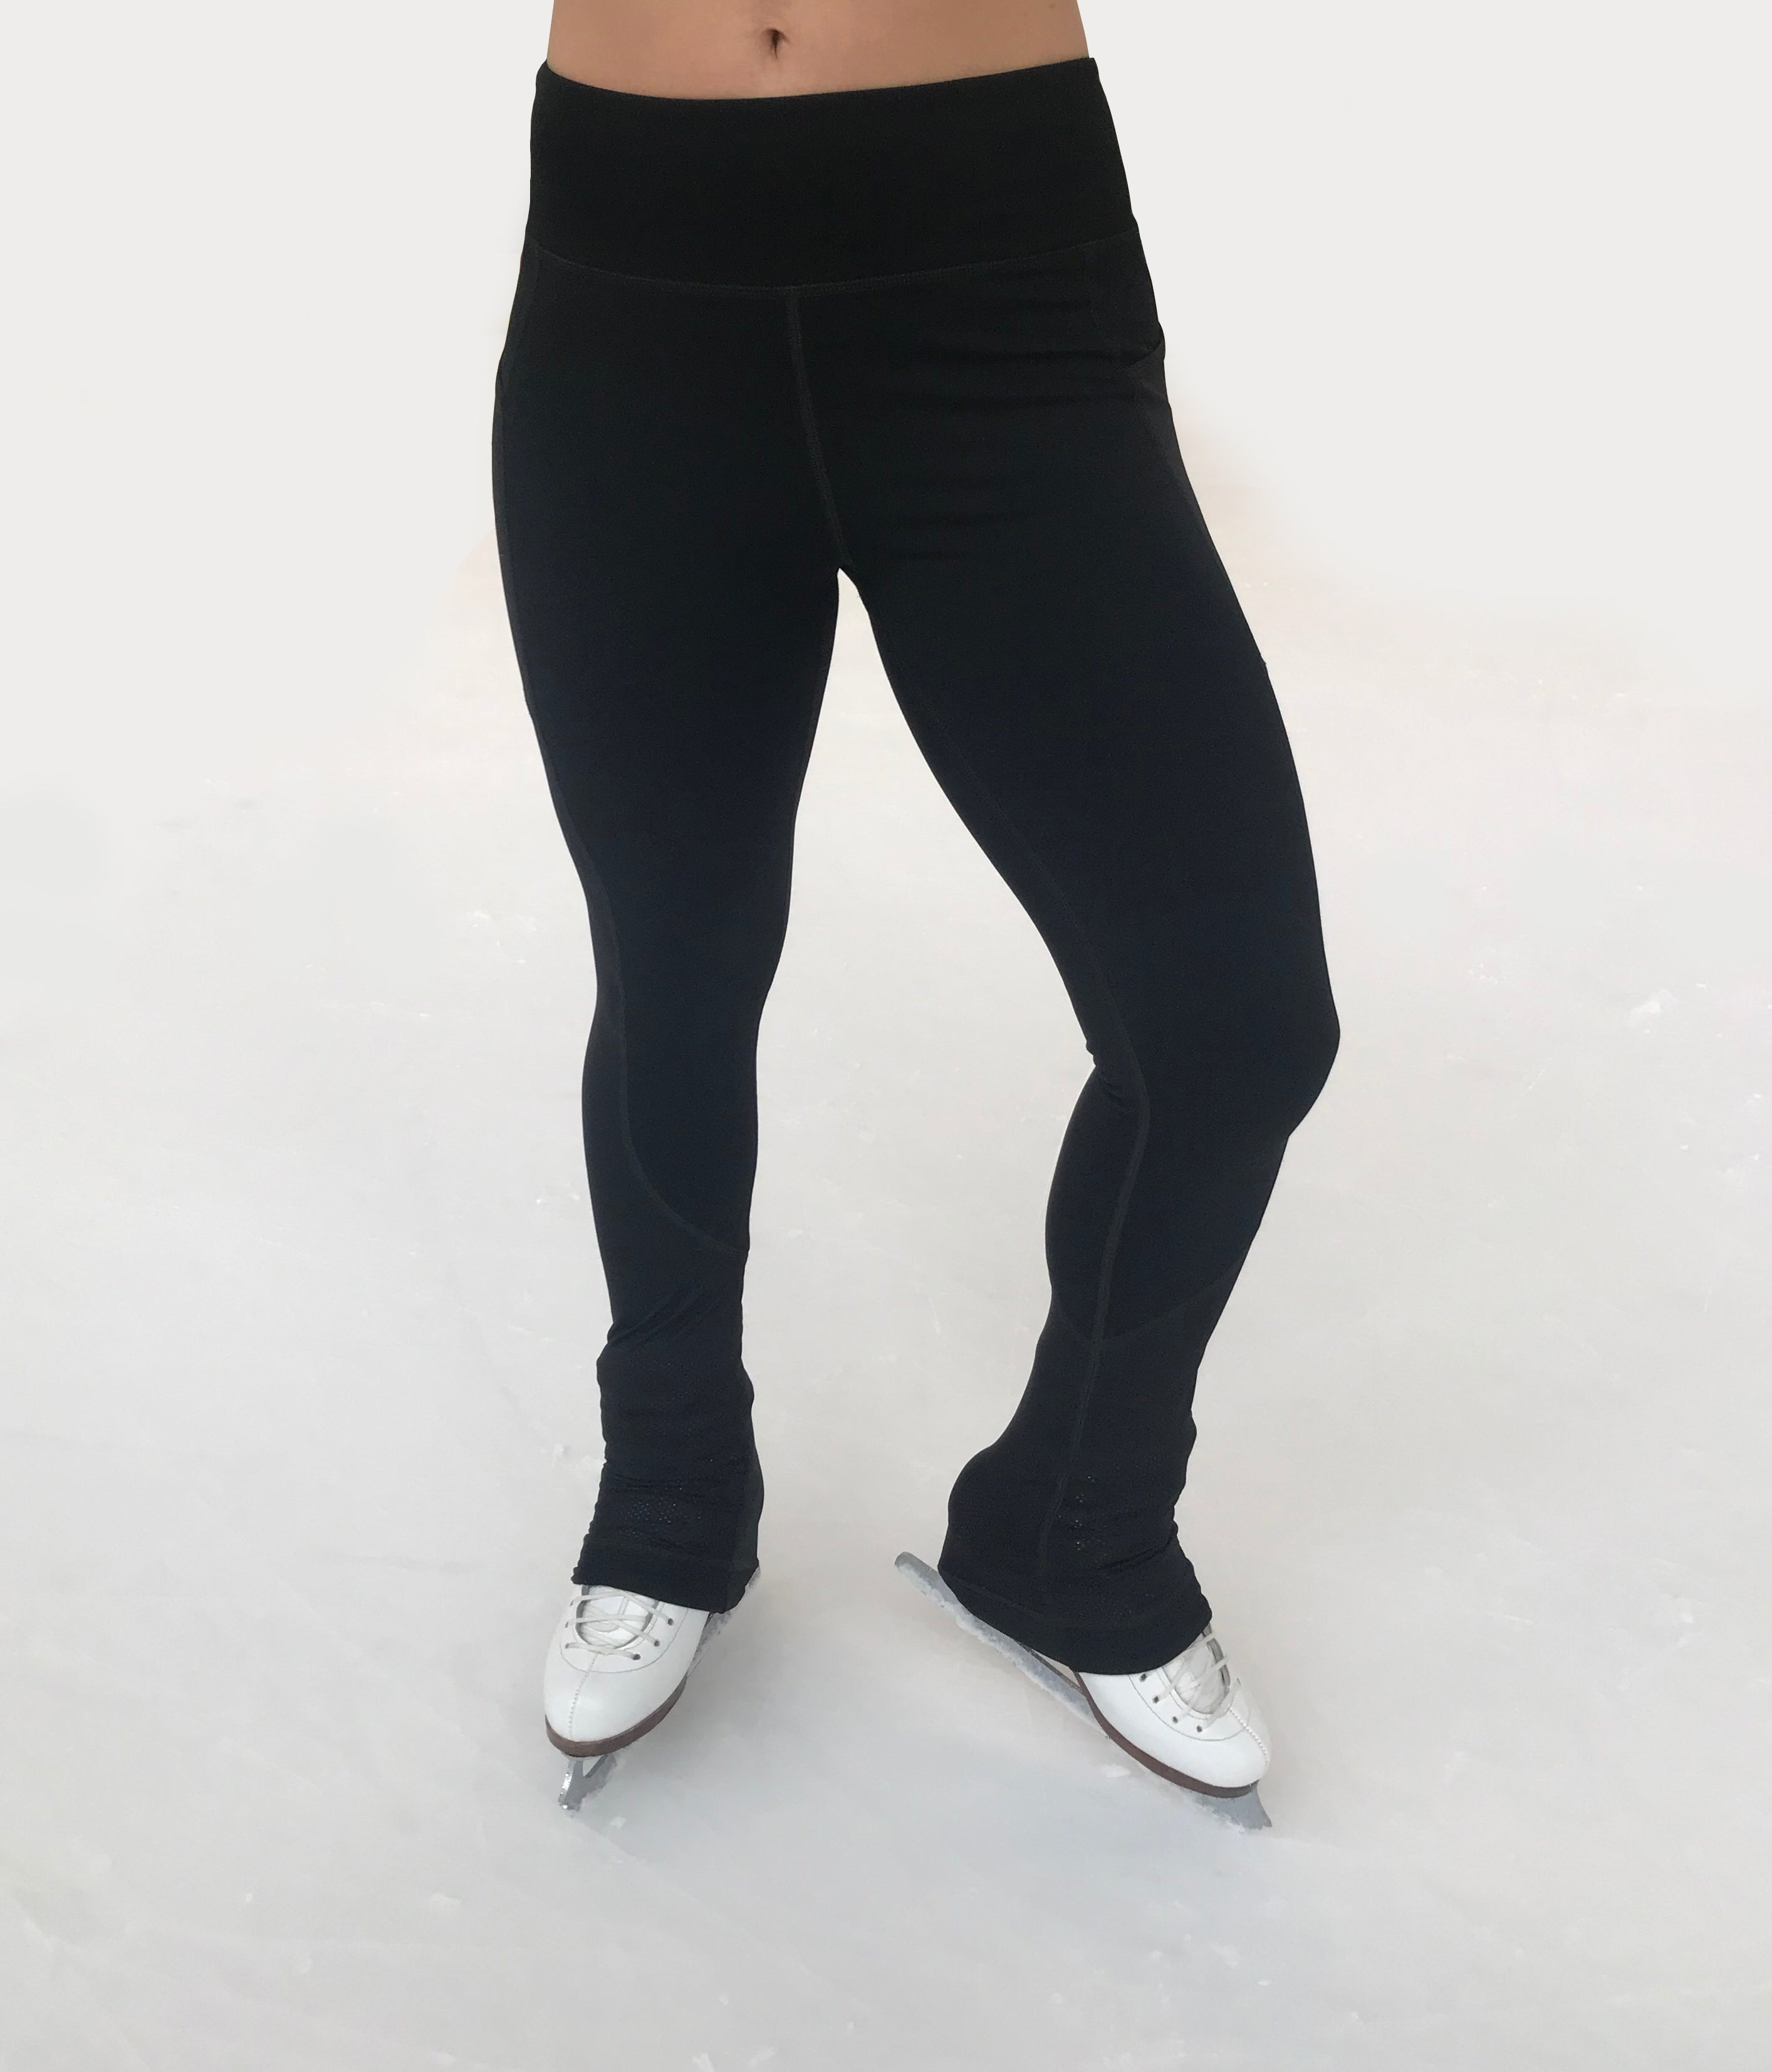 Junior's | Figure Skating Practice Pants with Pockets & Performance Mesh